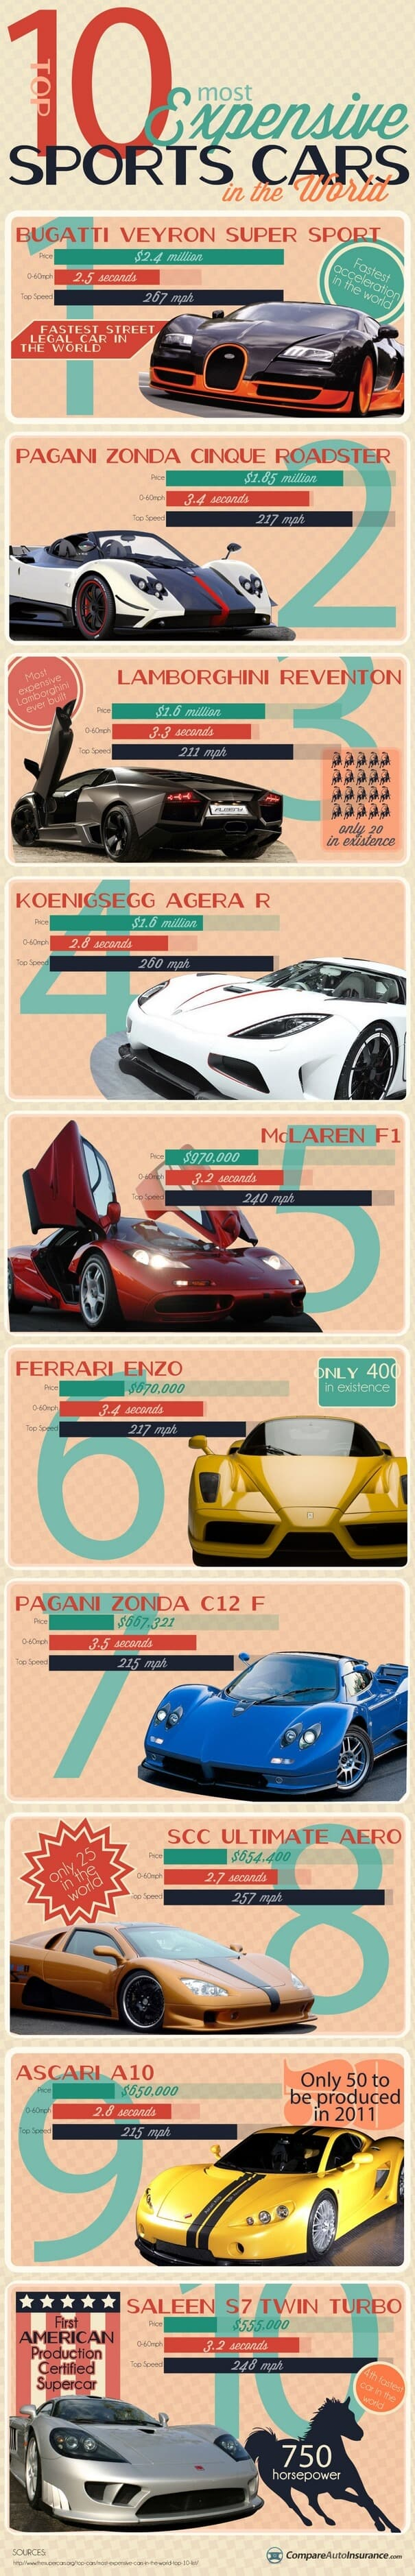 Top 10 Most Expensive Sports Cars in the world Infographic